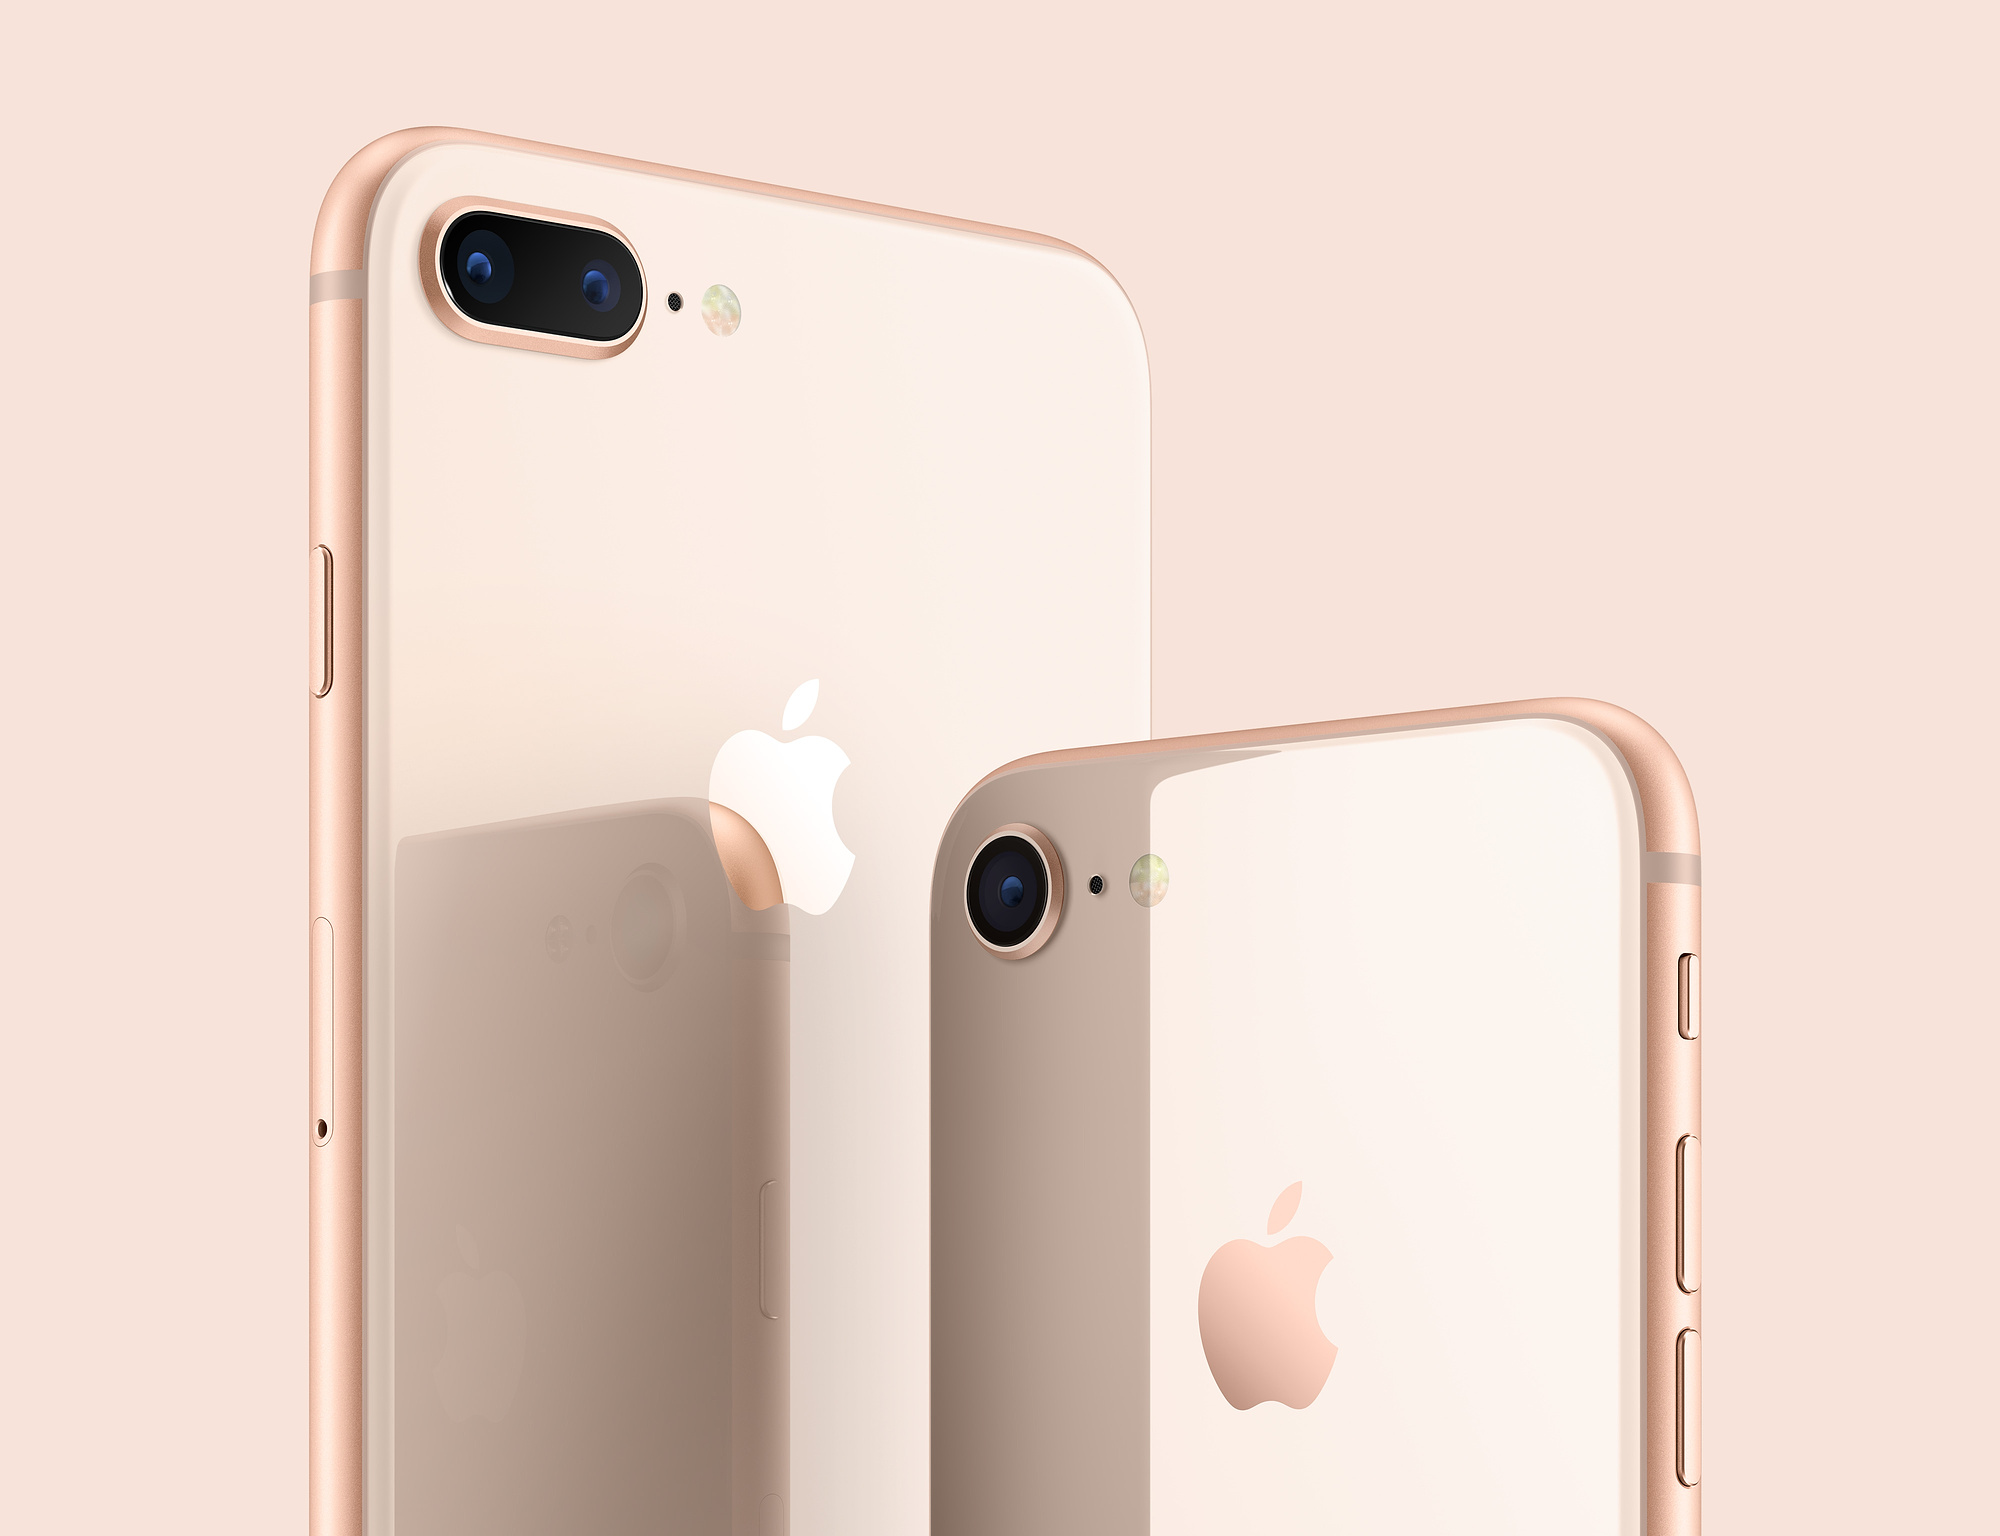 iphone8-gallery1-2017.jpg